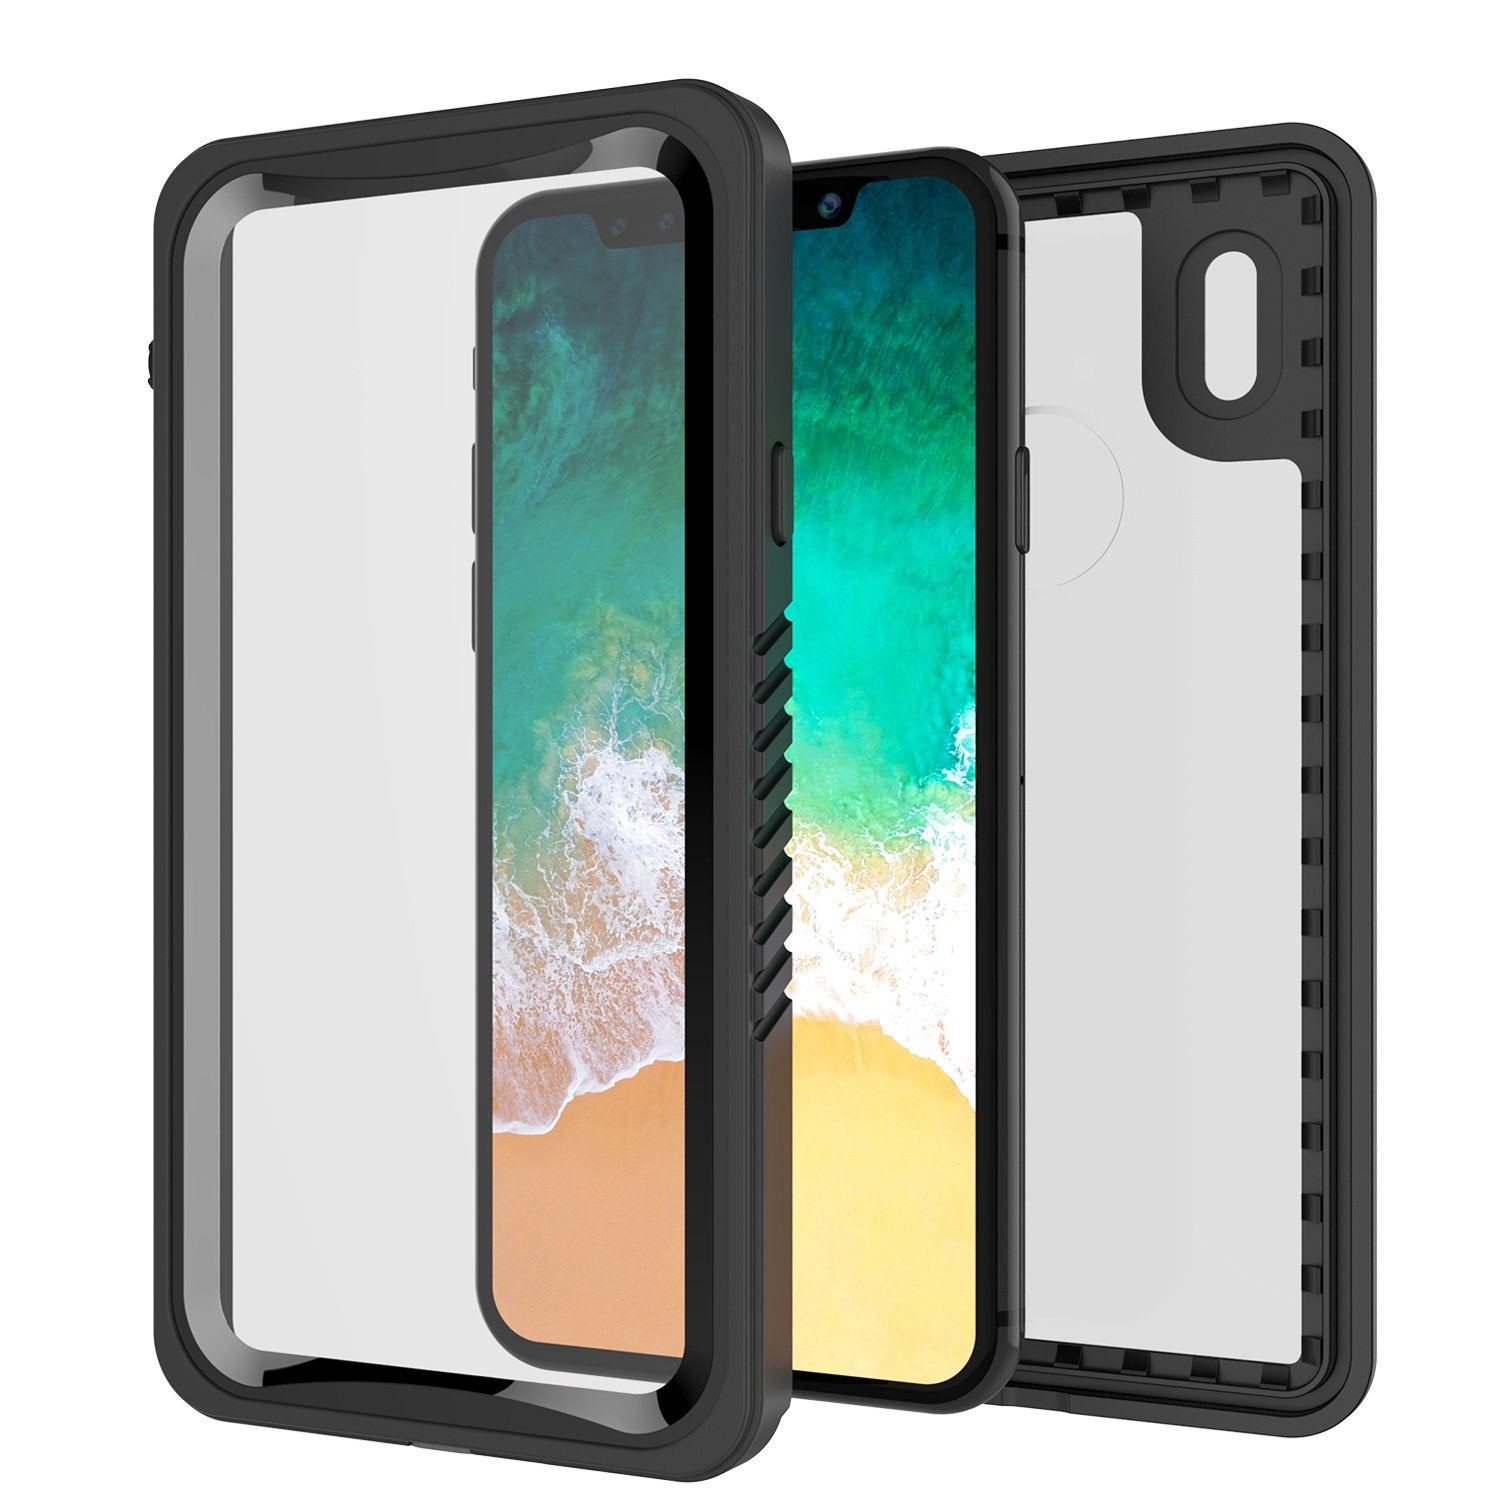 iPhone X Case, Punkcase [Extreme Series] [Slim Fit] [IP68 Certified] [BLACK] - PunkCase NZ